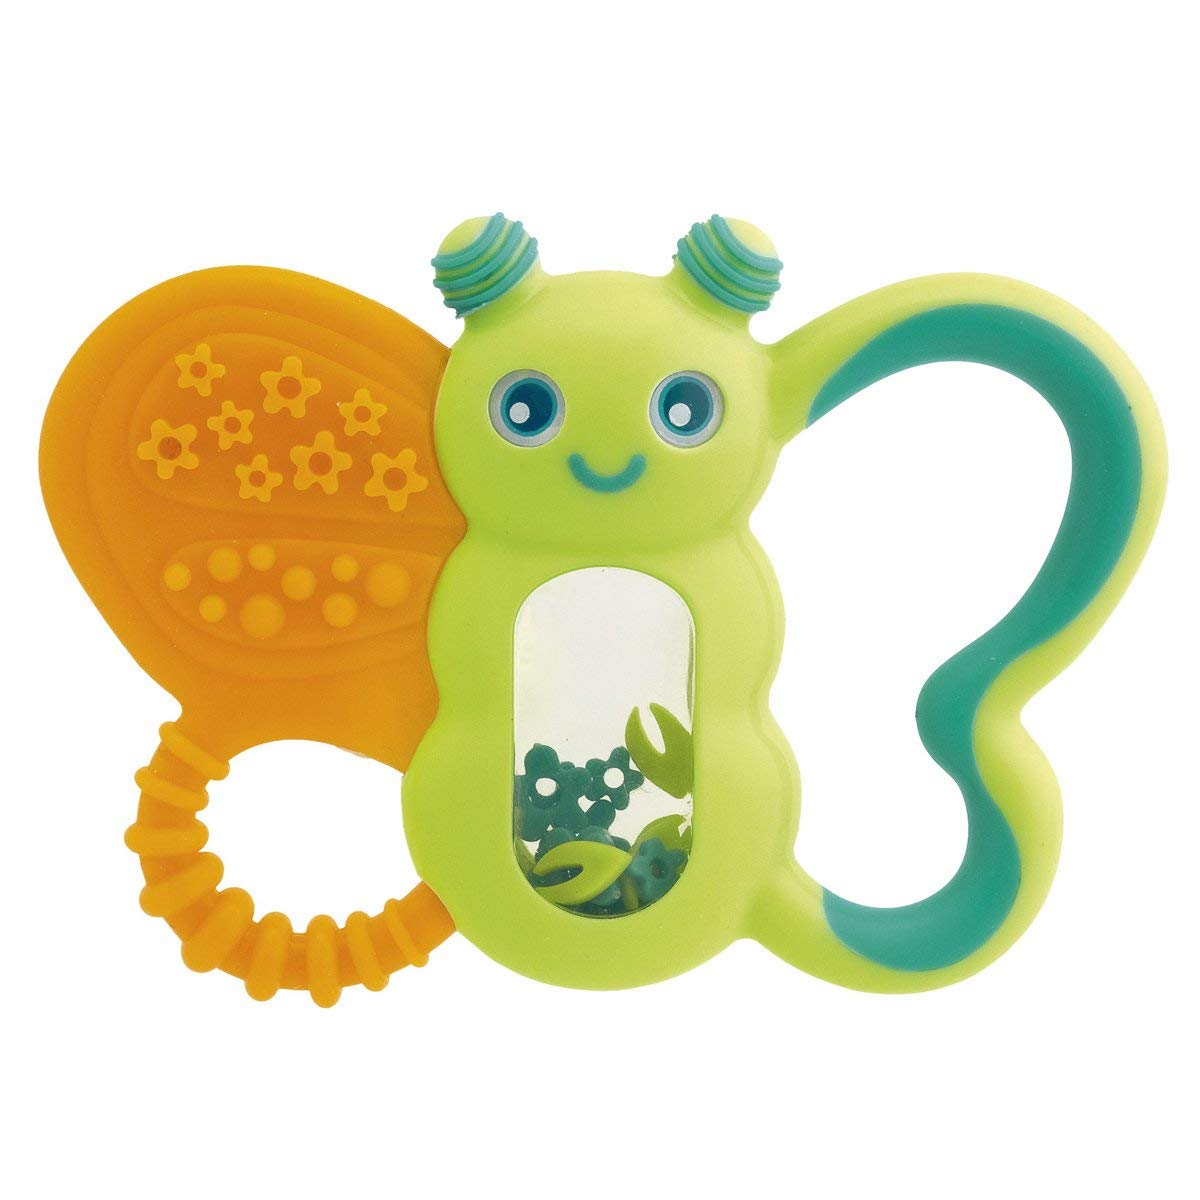 CH210025800000 CHICCO NF FUNNY RELAX TEETHING RING (1)